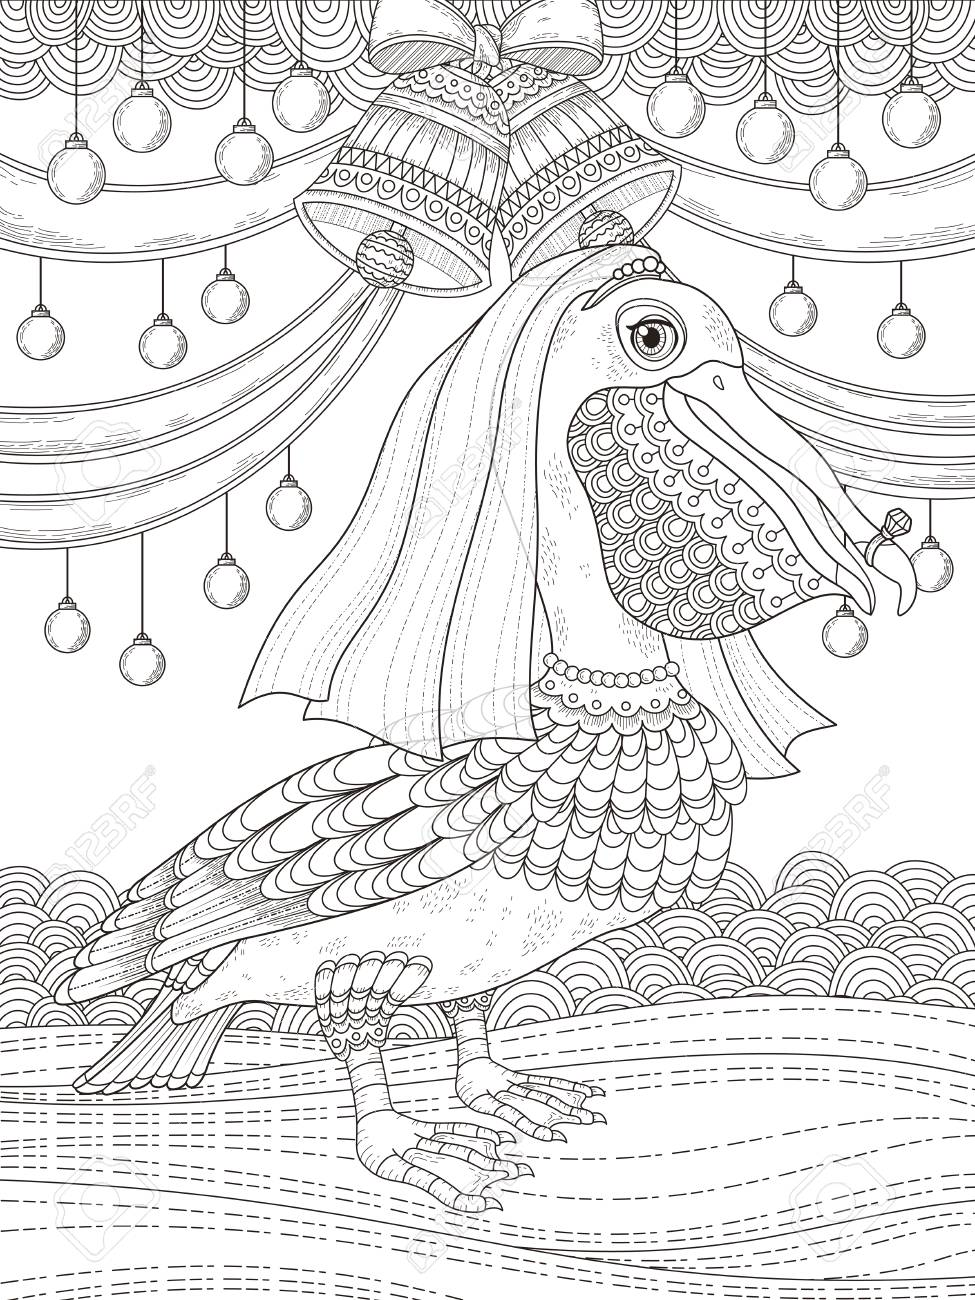 Adult Coloring Page With Lovely Bride Pelican Stock Vector   55905256